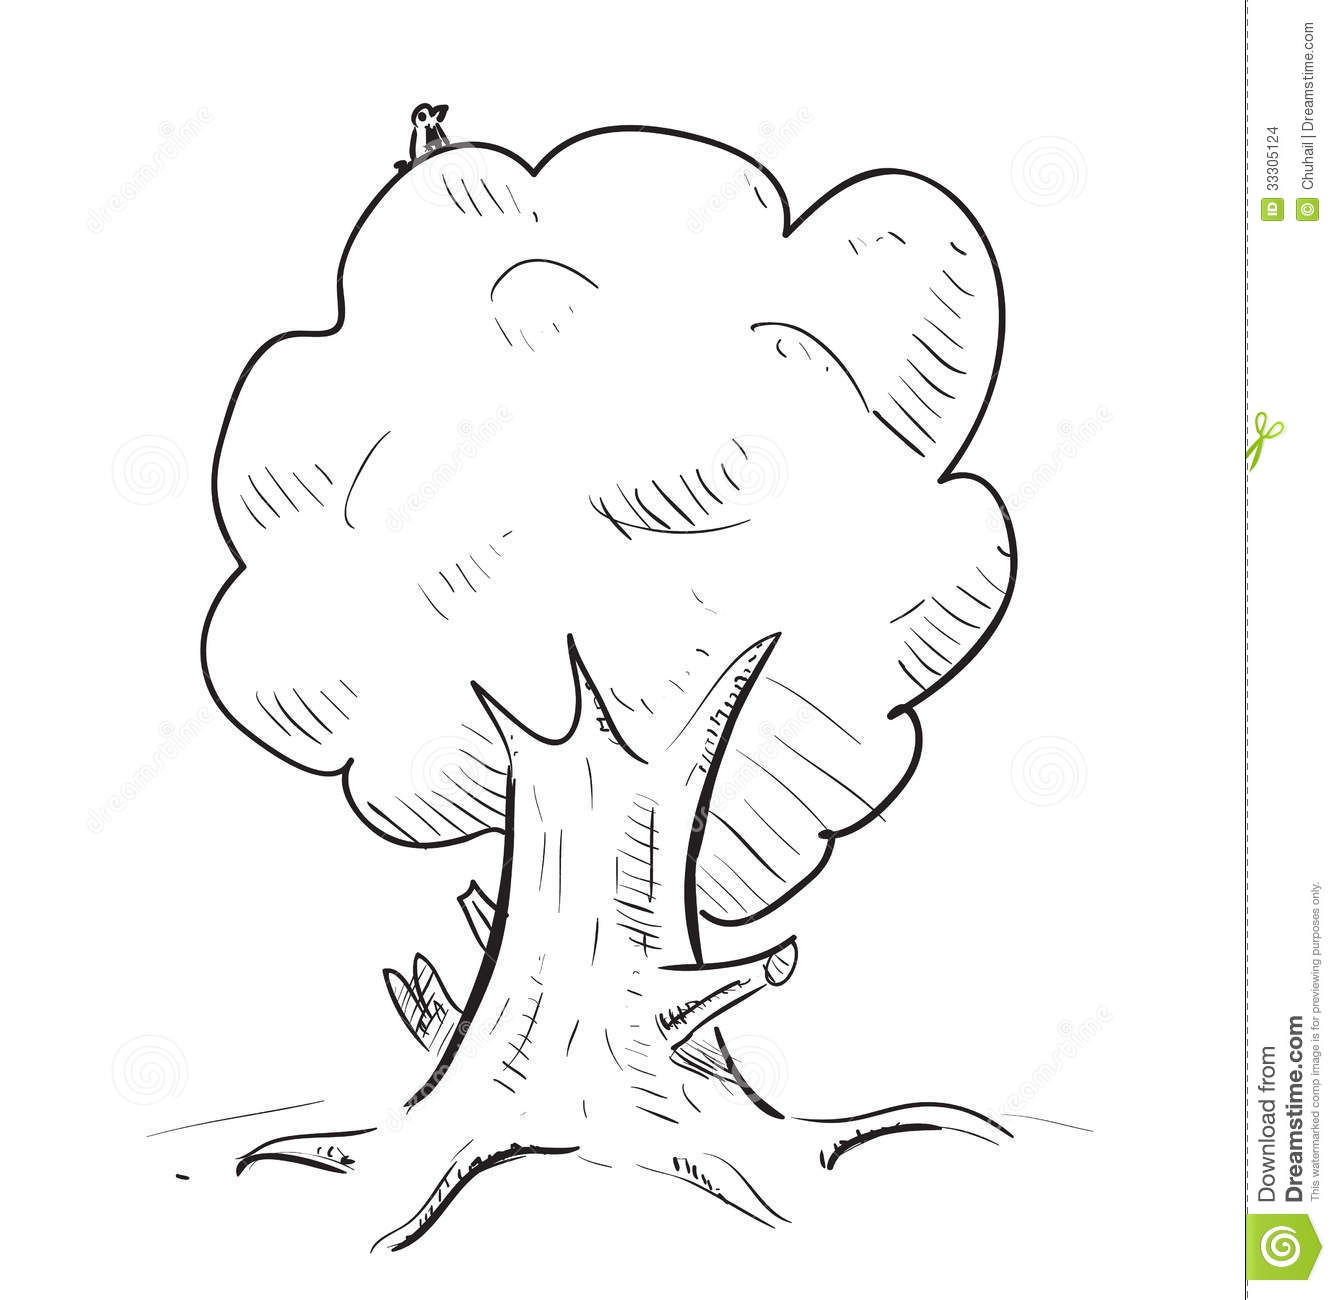 Old tree with hiding animals cartoon icon sketch fast pencil hand drawing illustration in funny doodle style